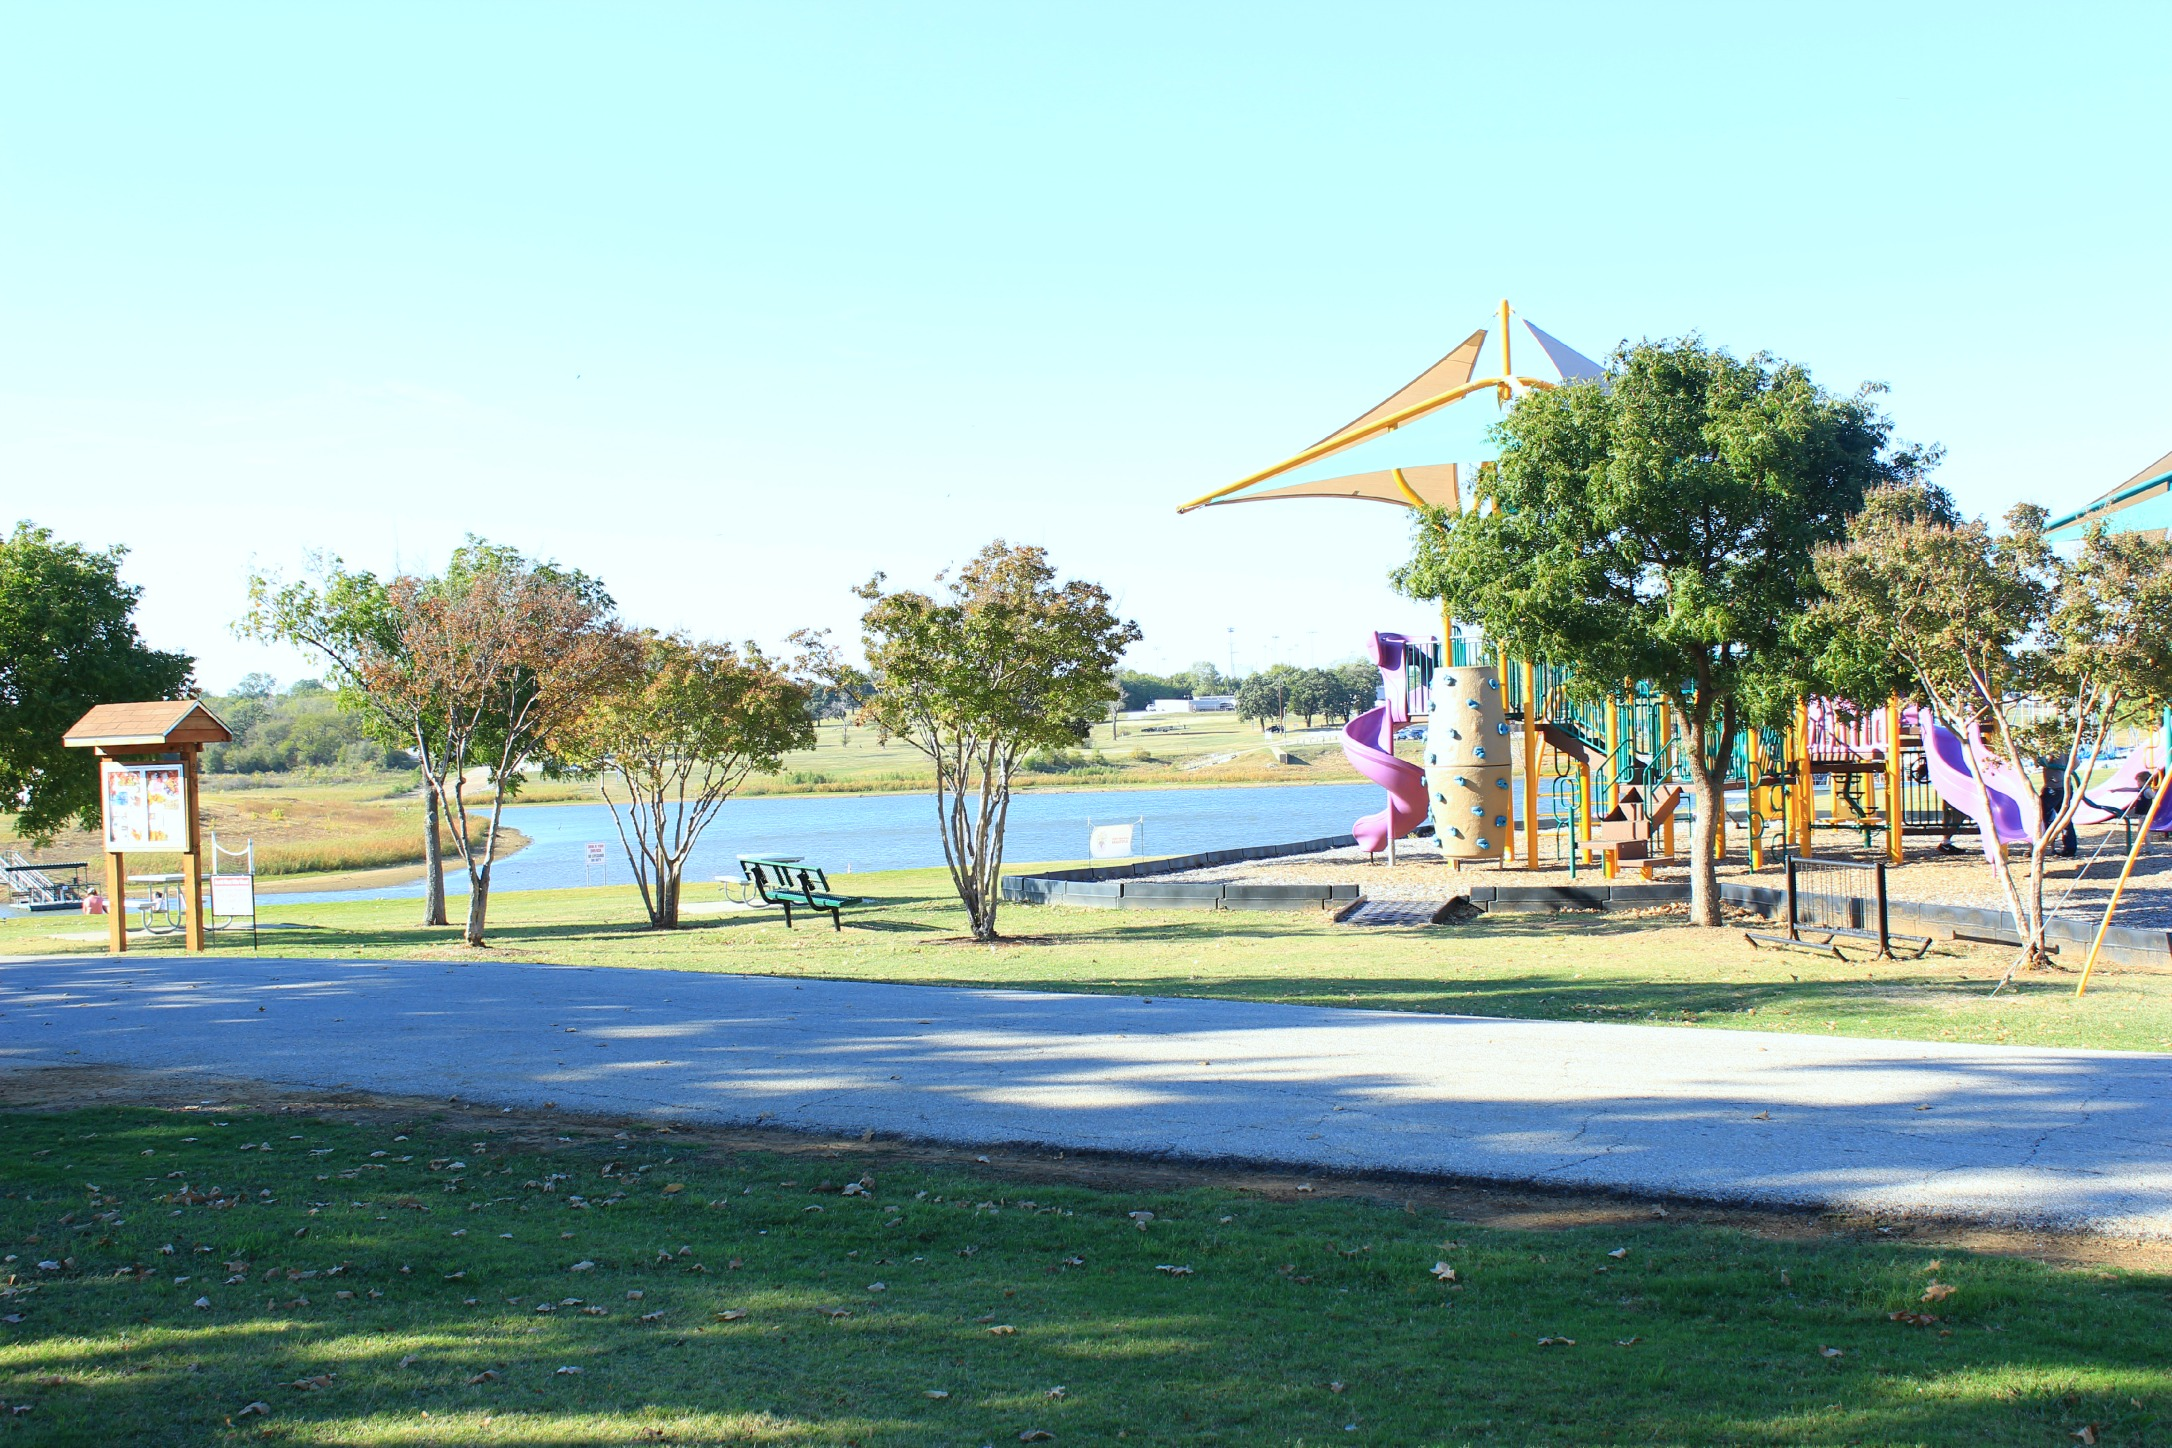 Grapveine Lake playground